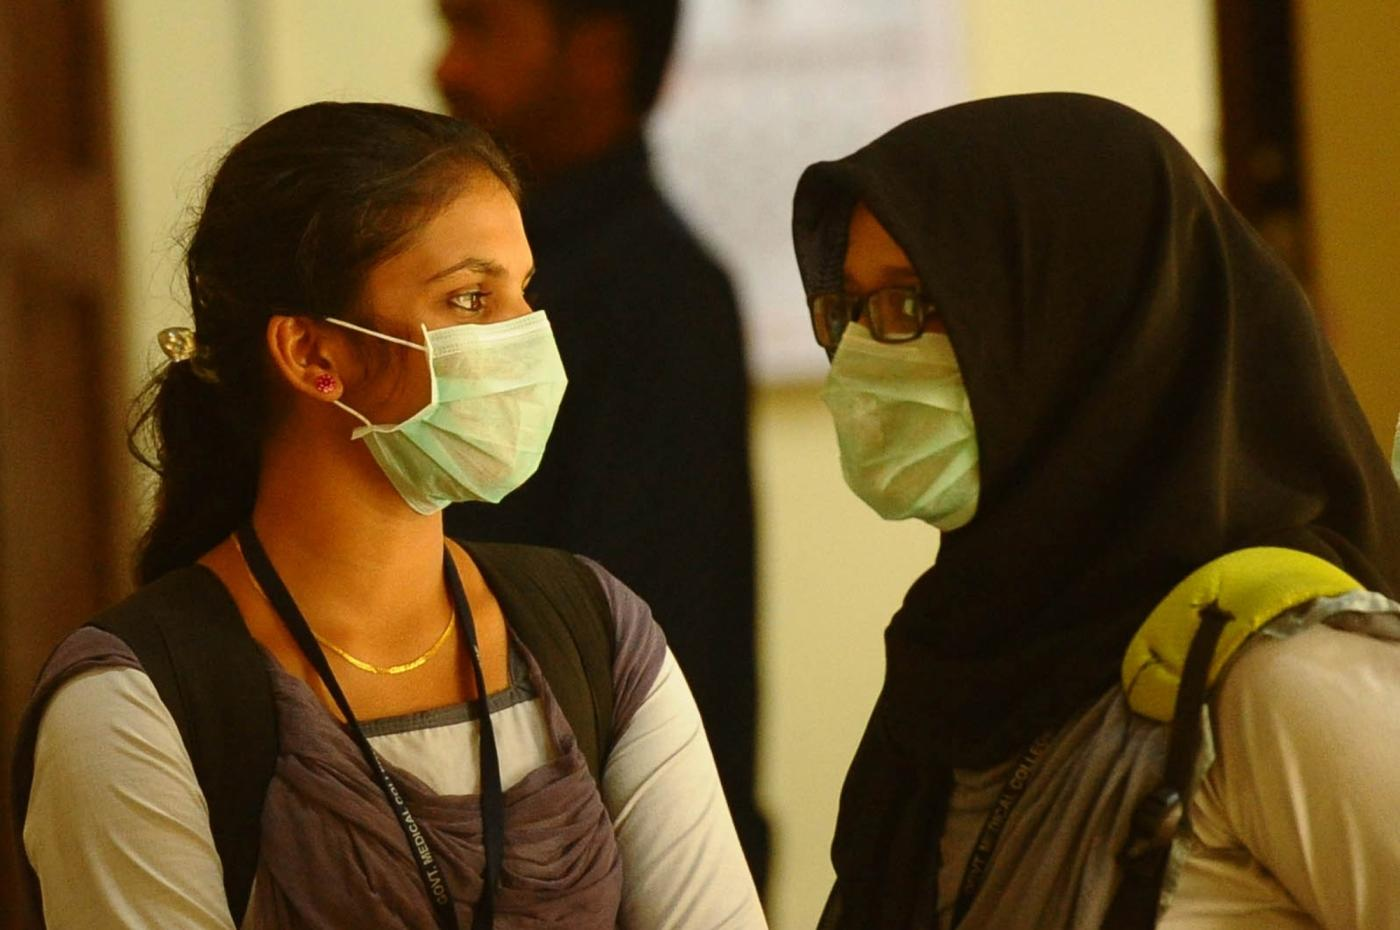 Kozhikode (Kerala): Students wear safety masks as a precautionary measure after the outbreak of 'Nipah' virus in Kozhikode, Kerala on May 22, 2018. (Photo: IANS) by .